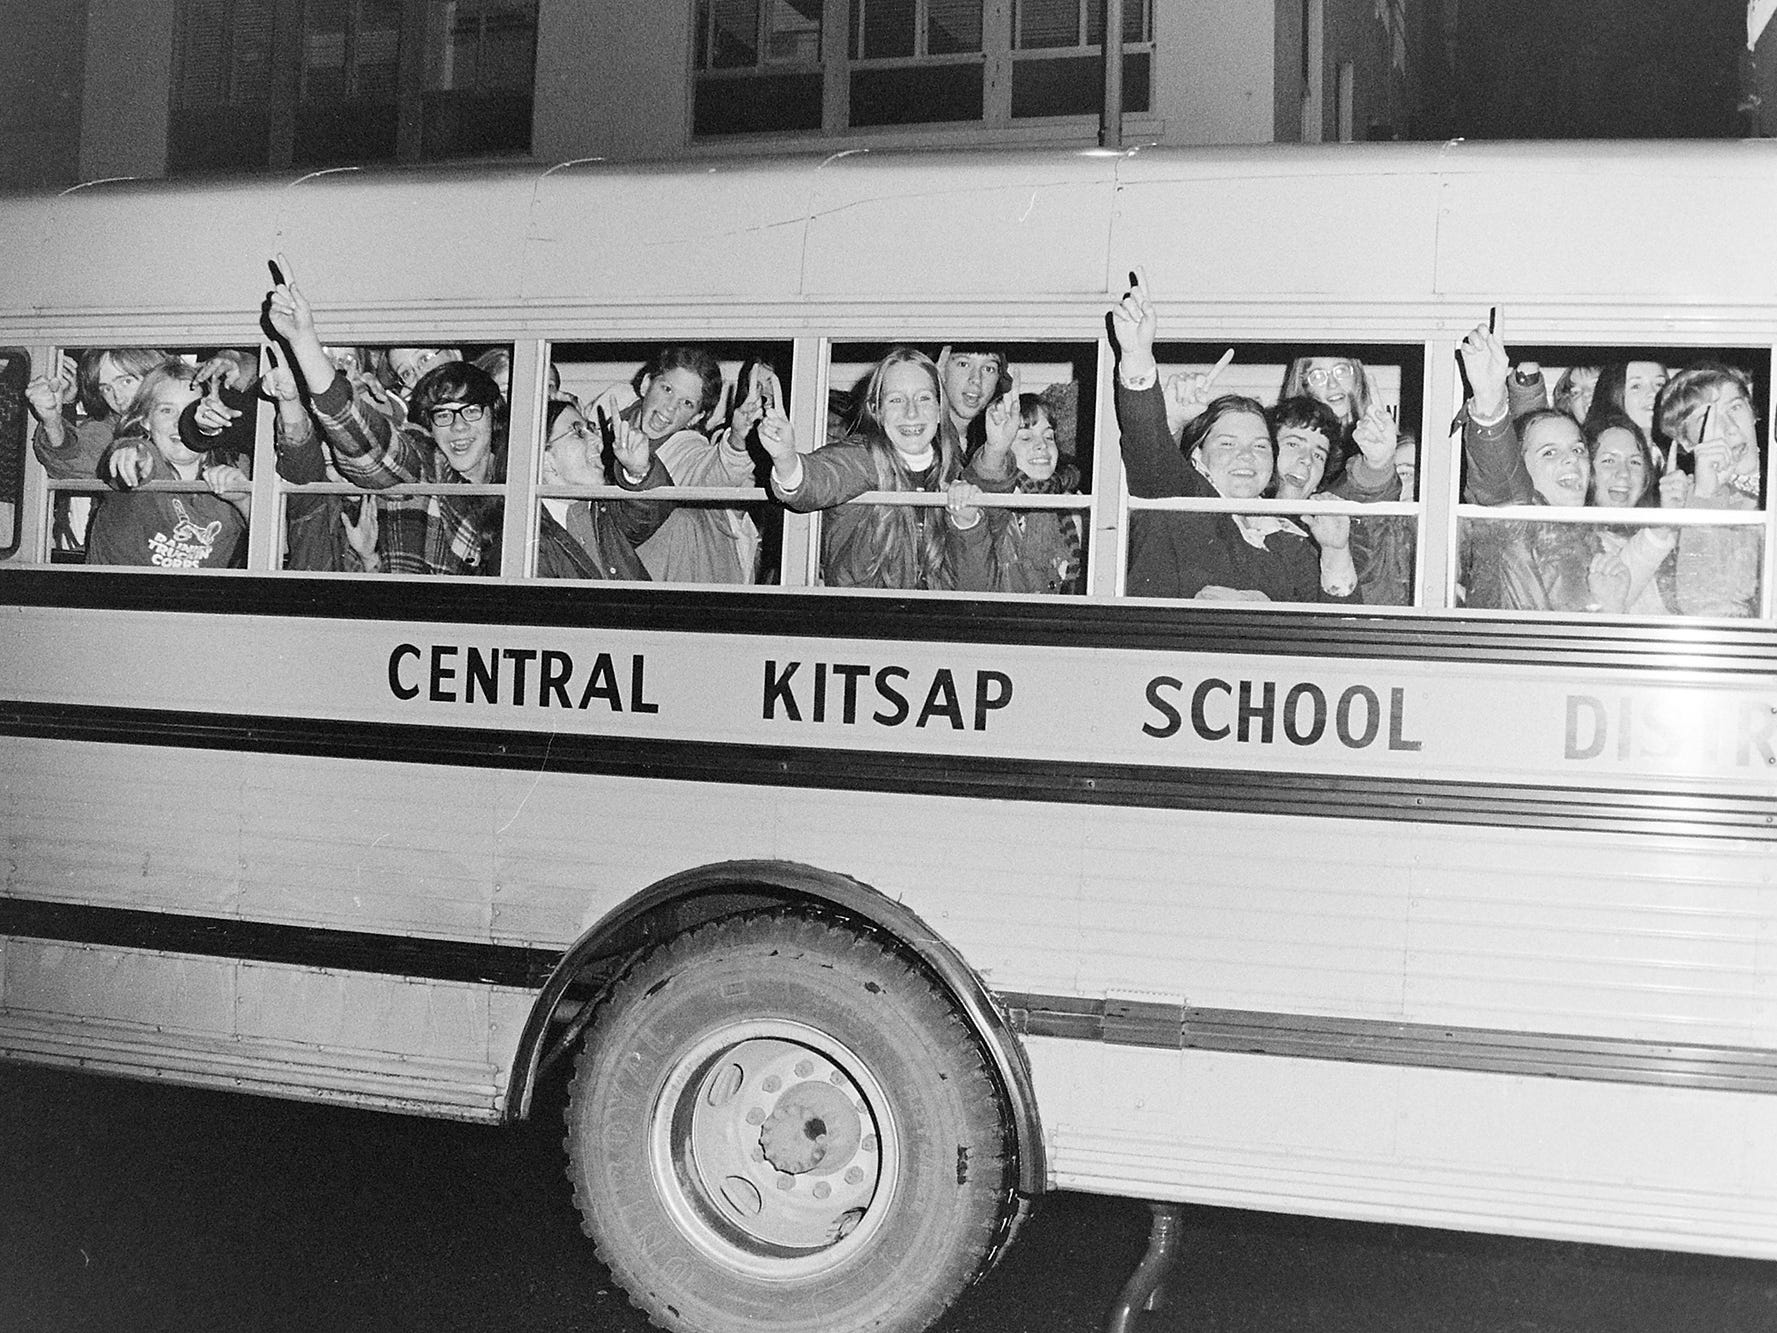 10/11/73